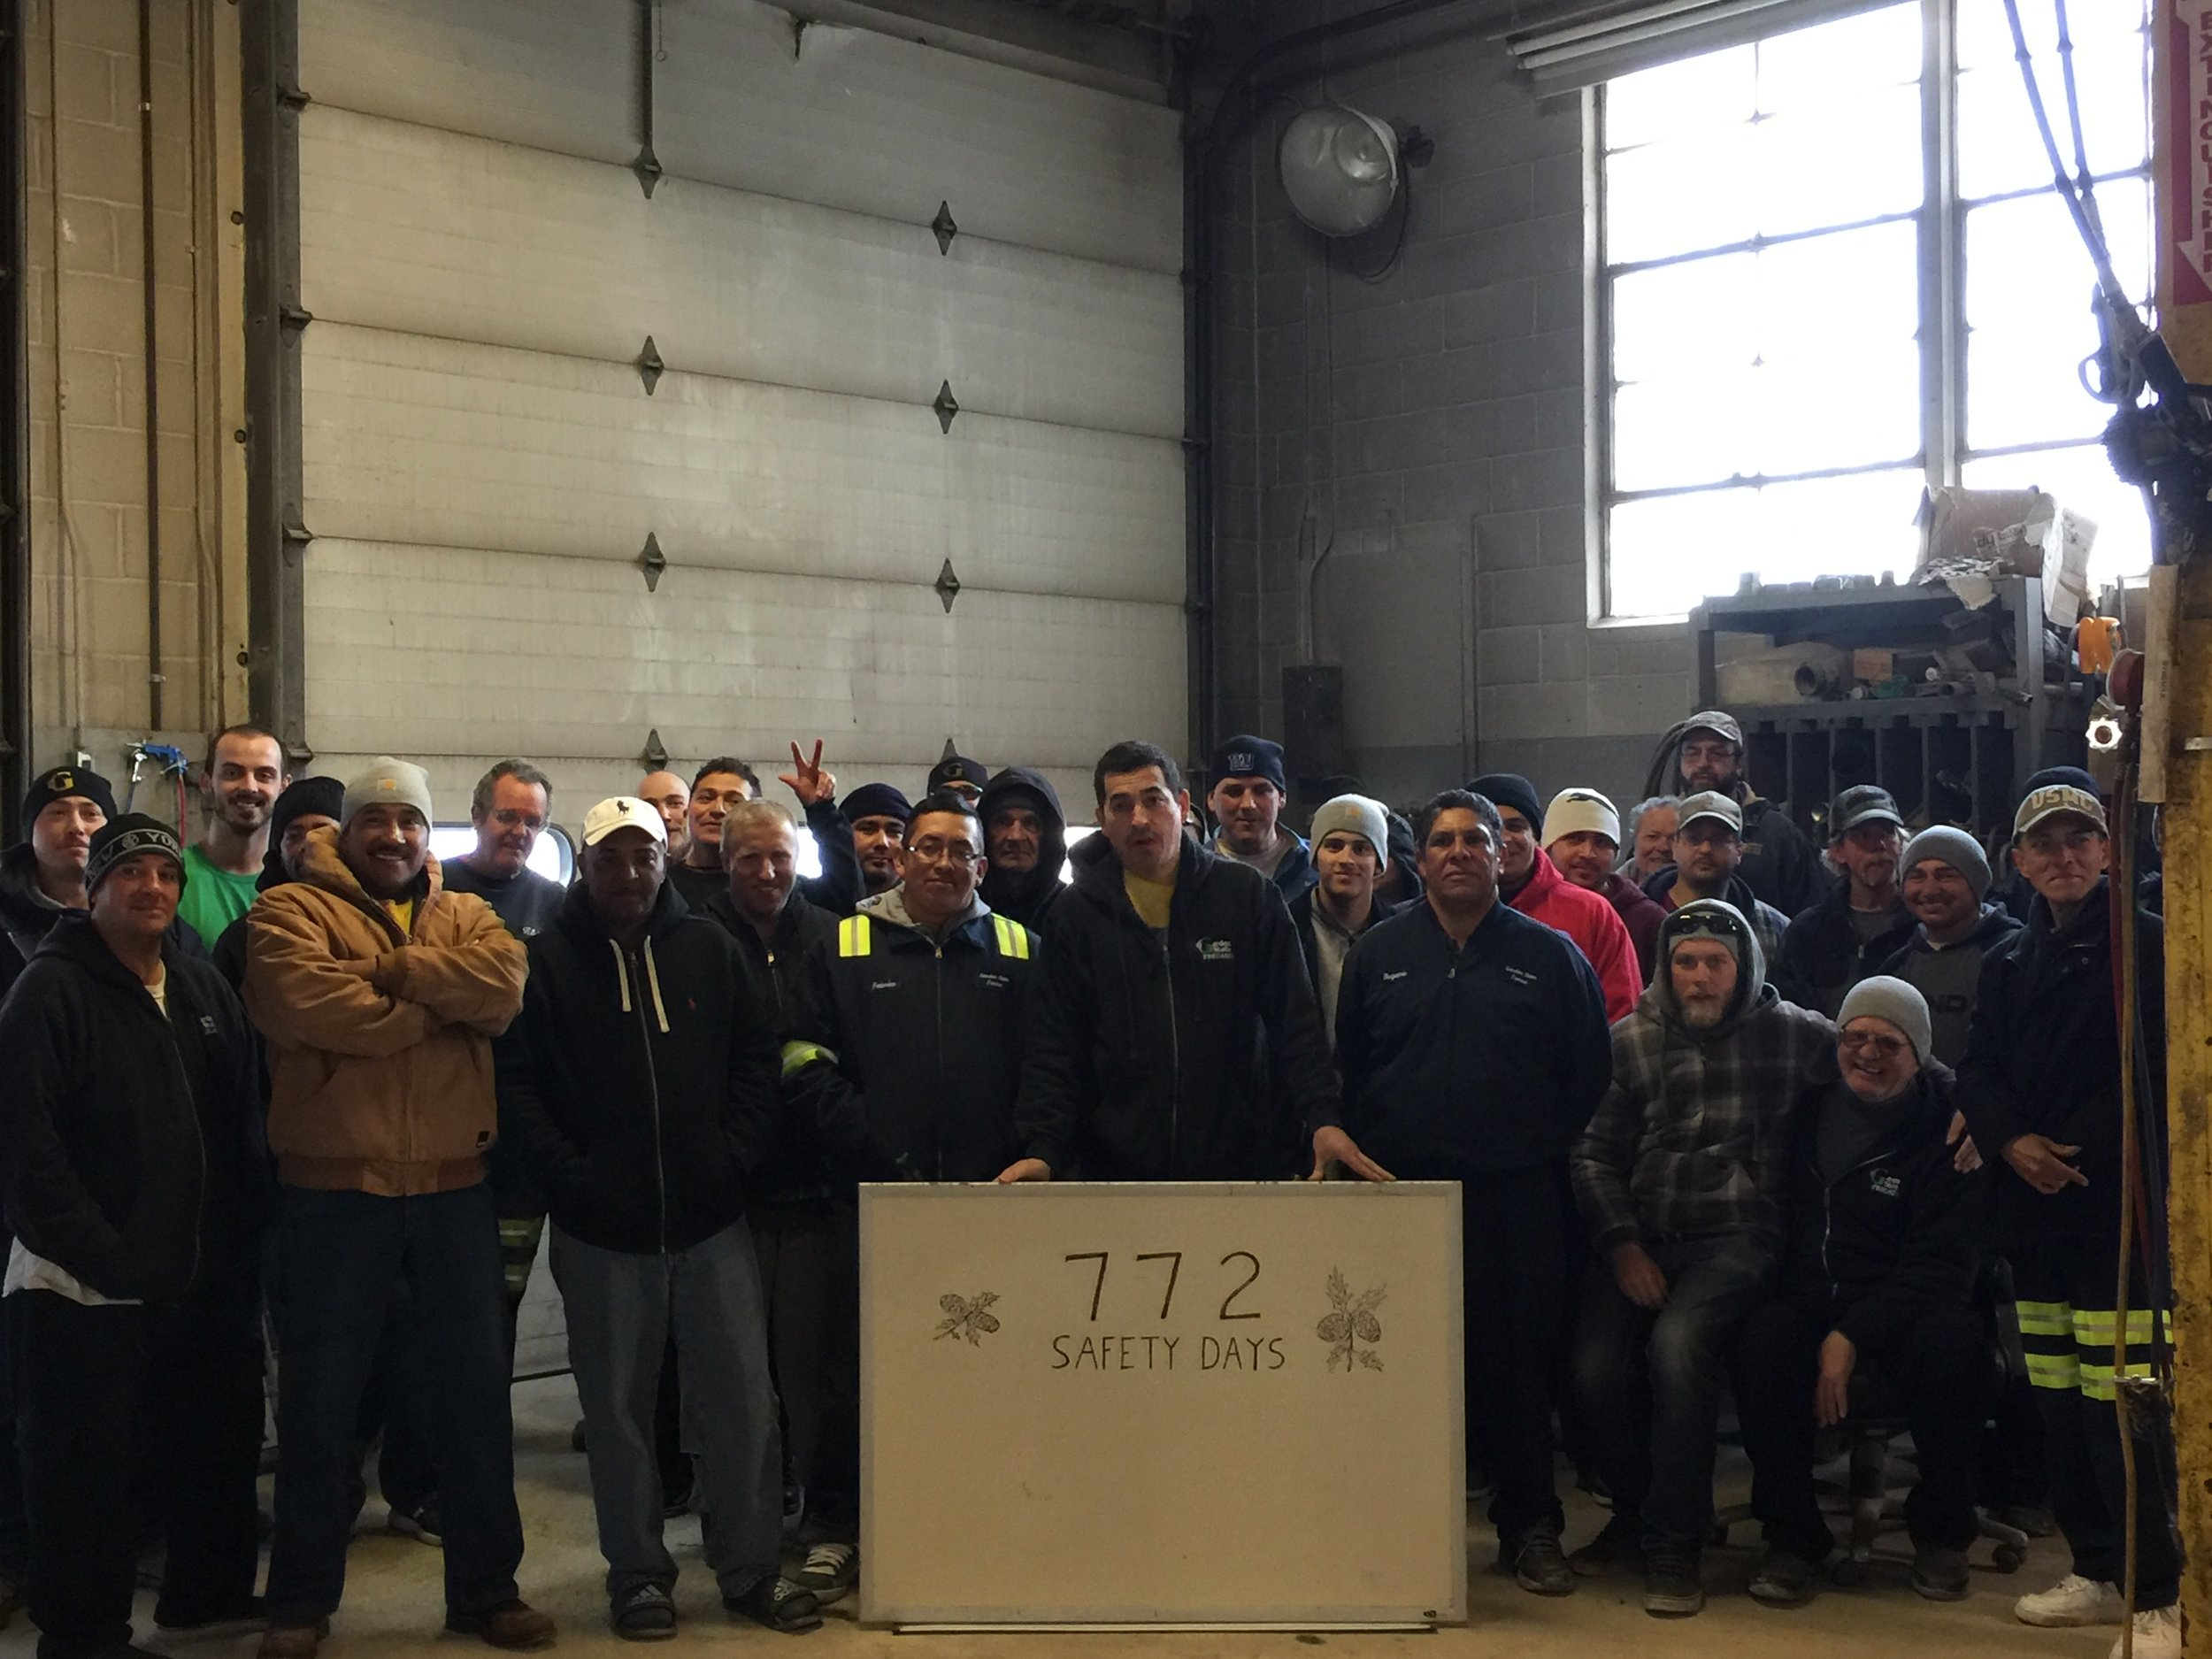 GSP Celebrates 772 Safety Days